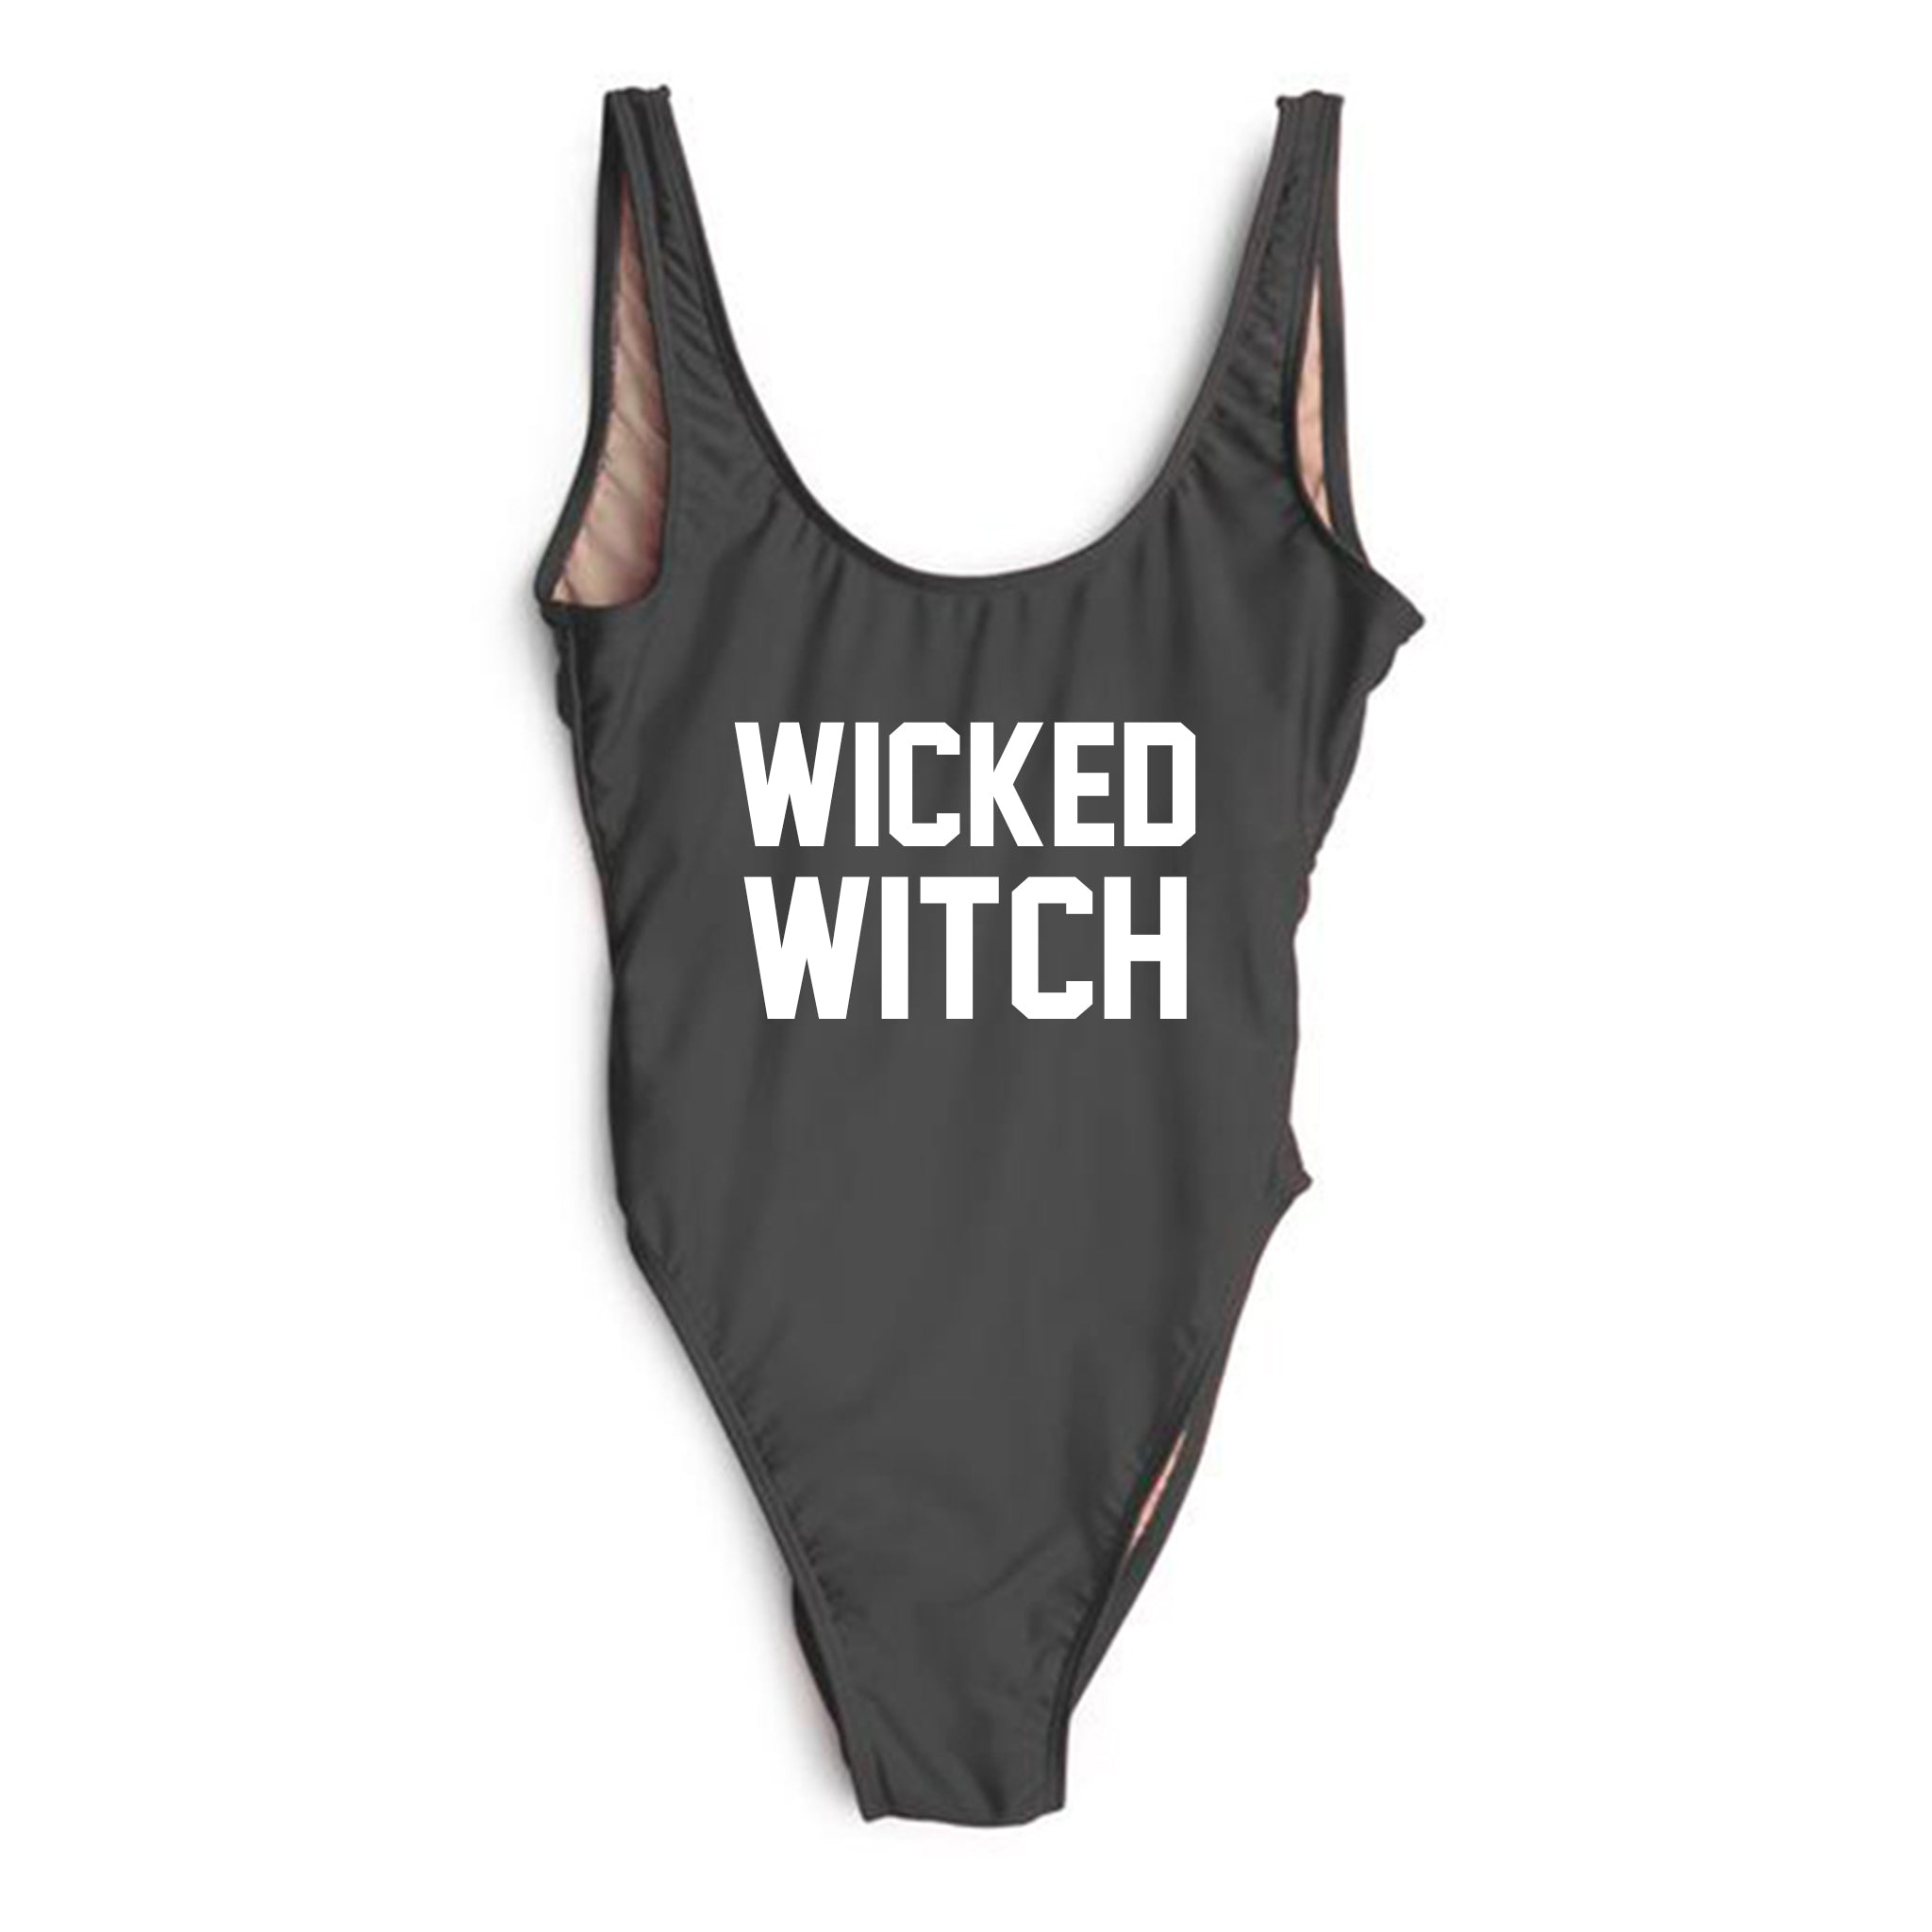 WICKED WITCH [SWIMSUIT]